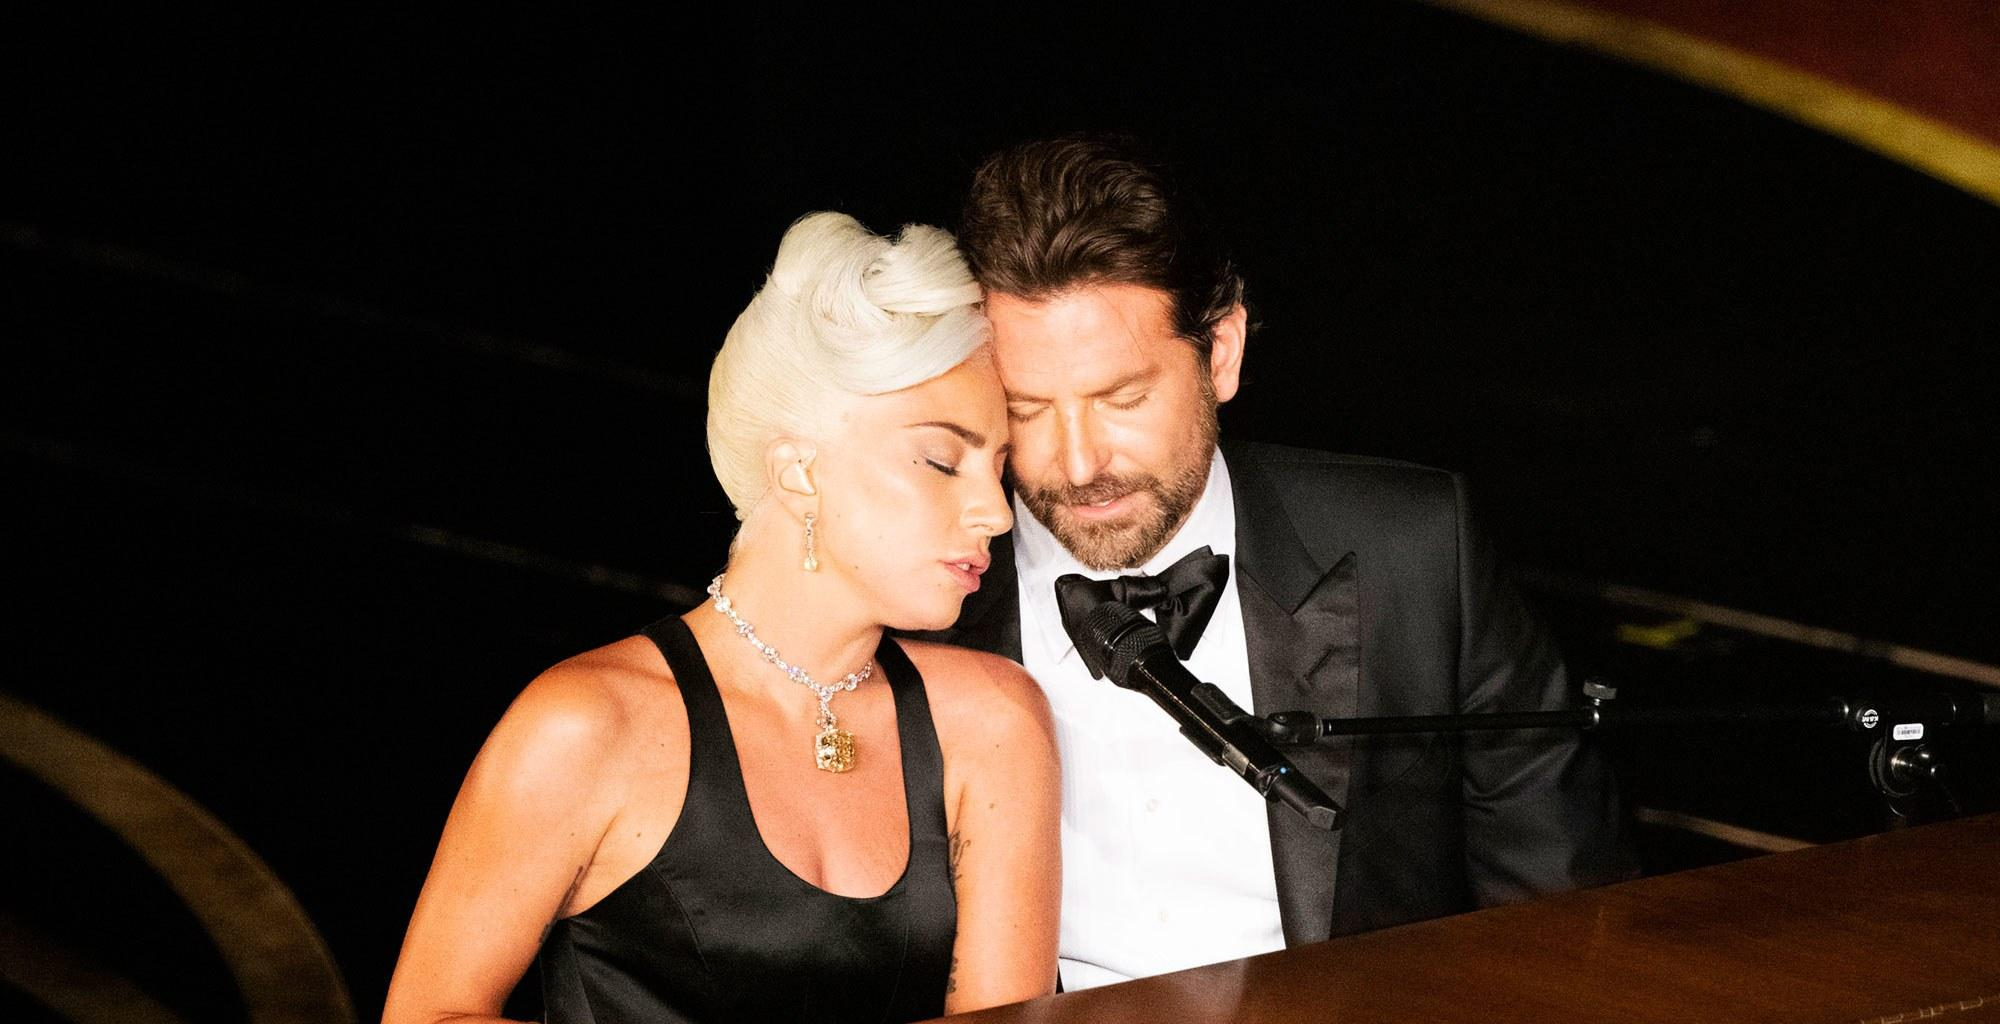 Lady Gaga Talks Romantic Bradley Cooper Oscars Performance - Reveals They Tried To 'Fool' Everyone Into Believing They're Really In Love